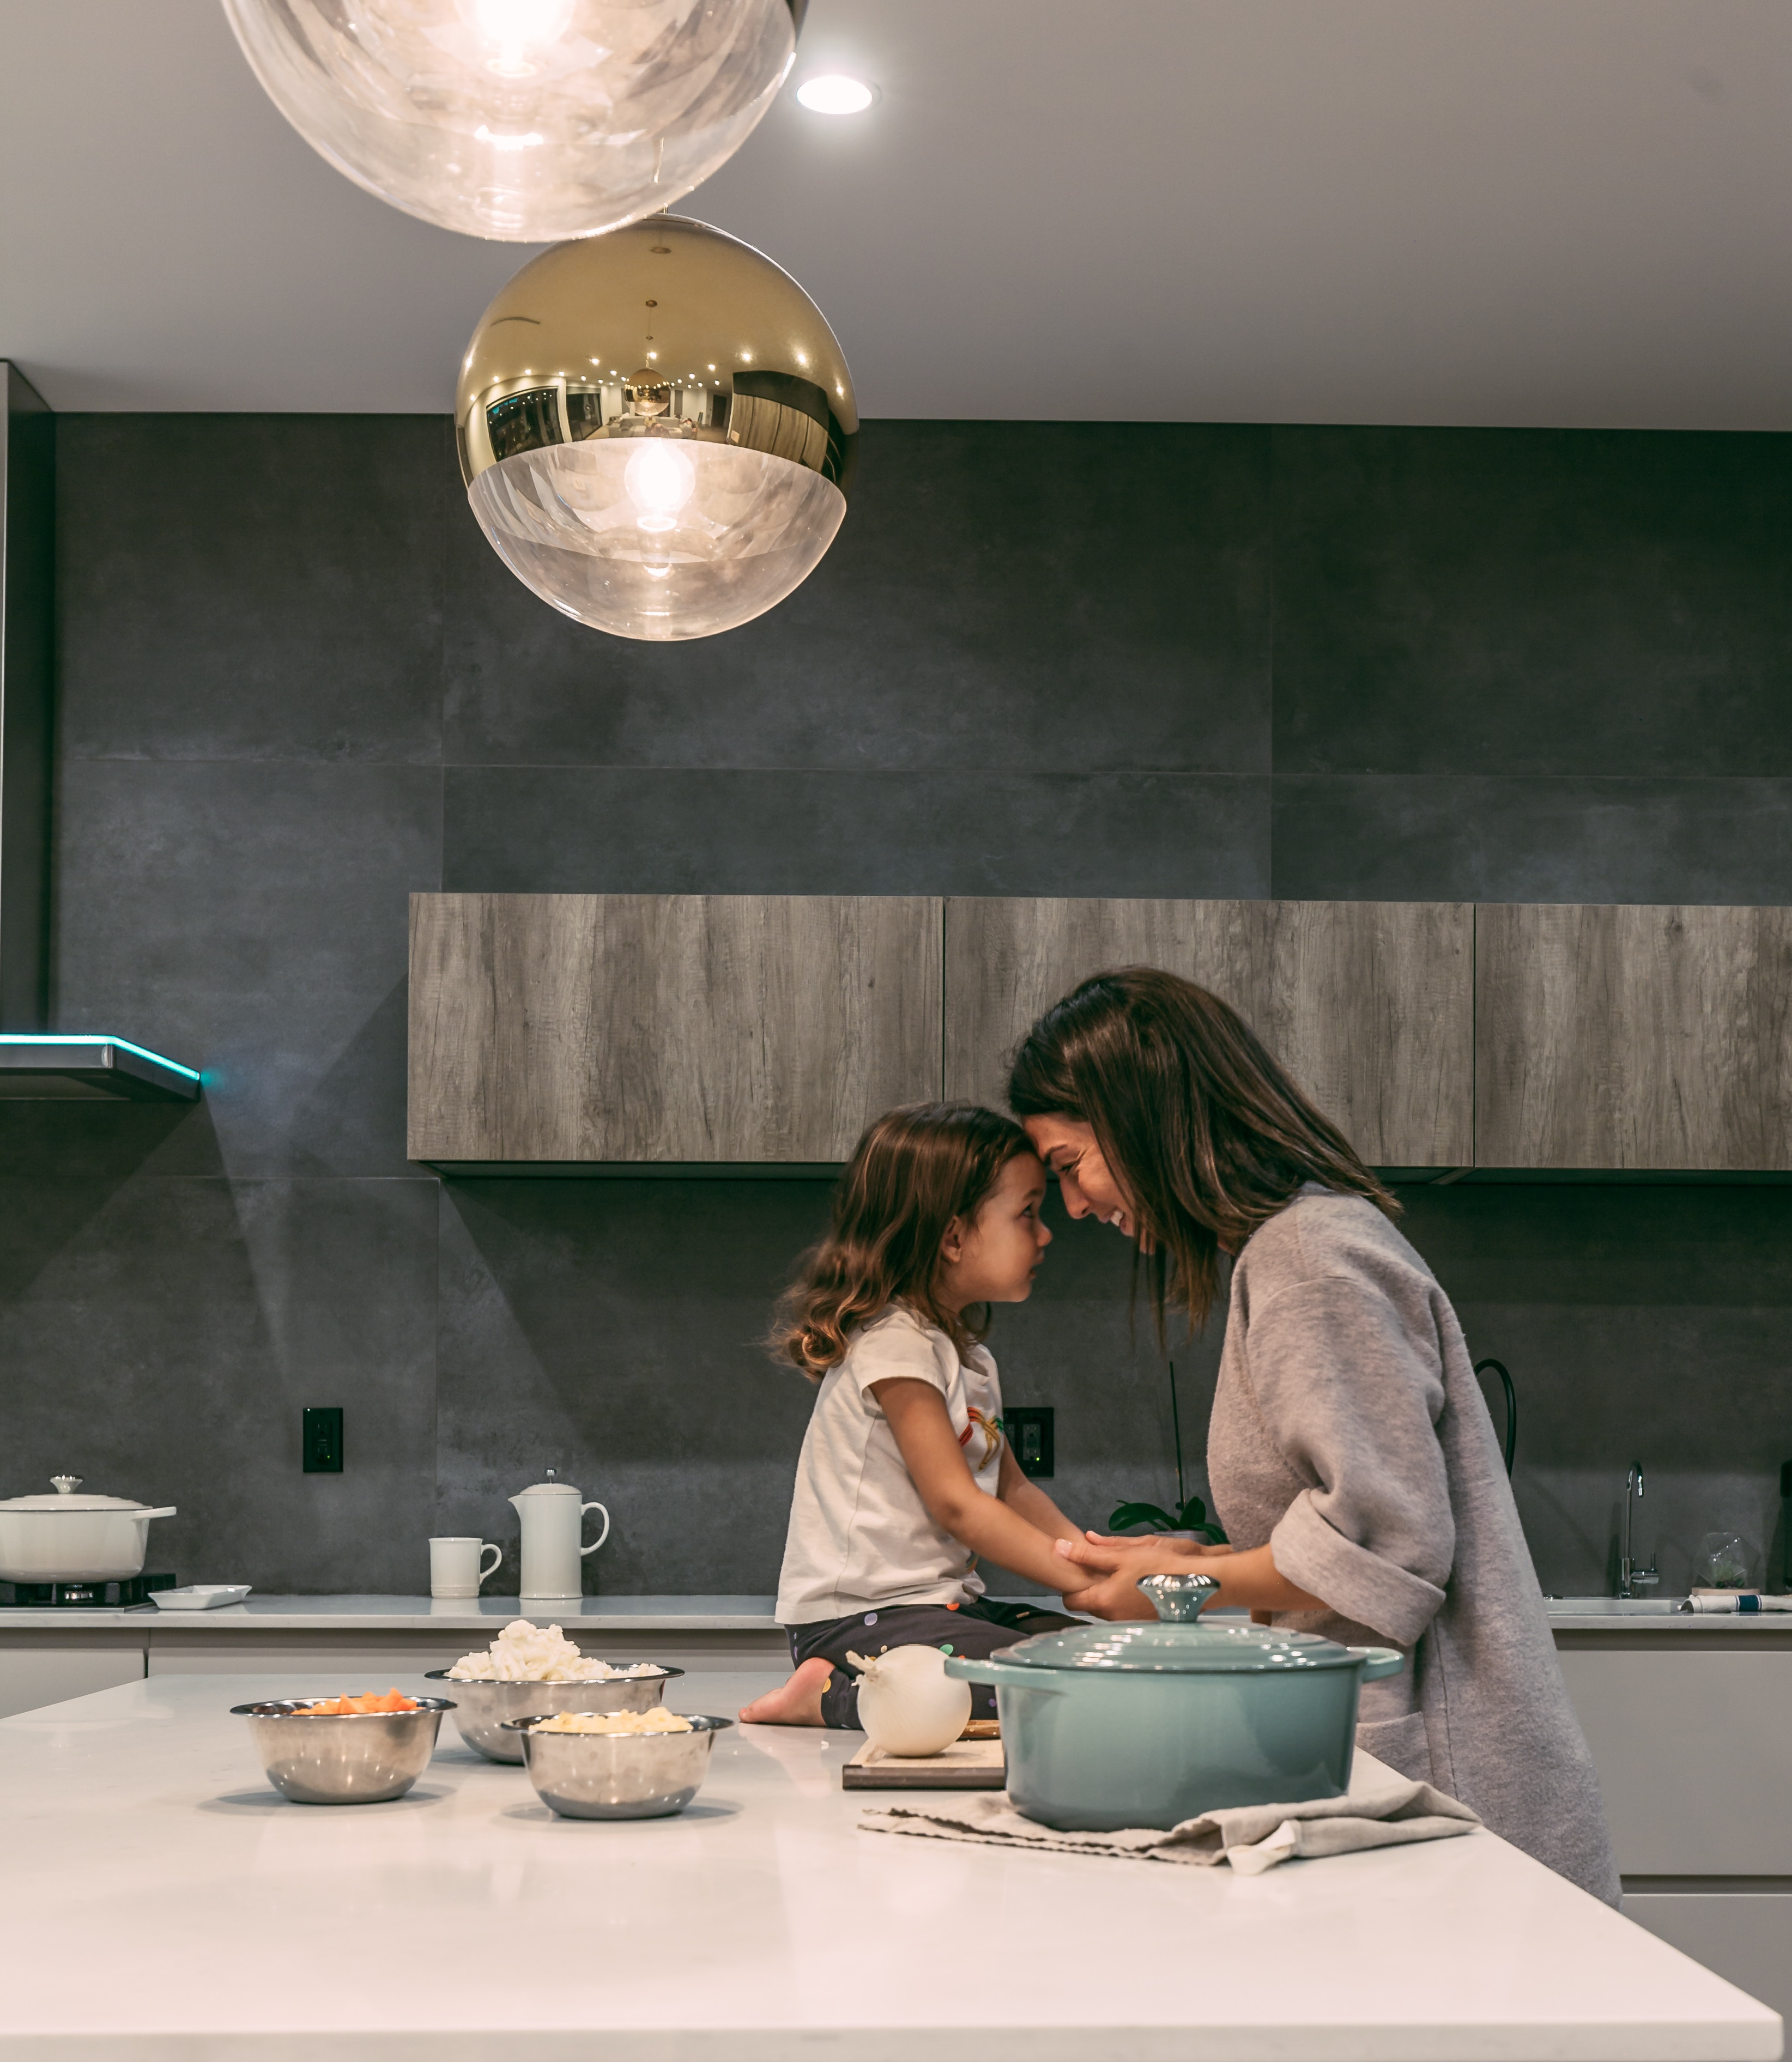 A mom snuggling with daughter in kitchen